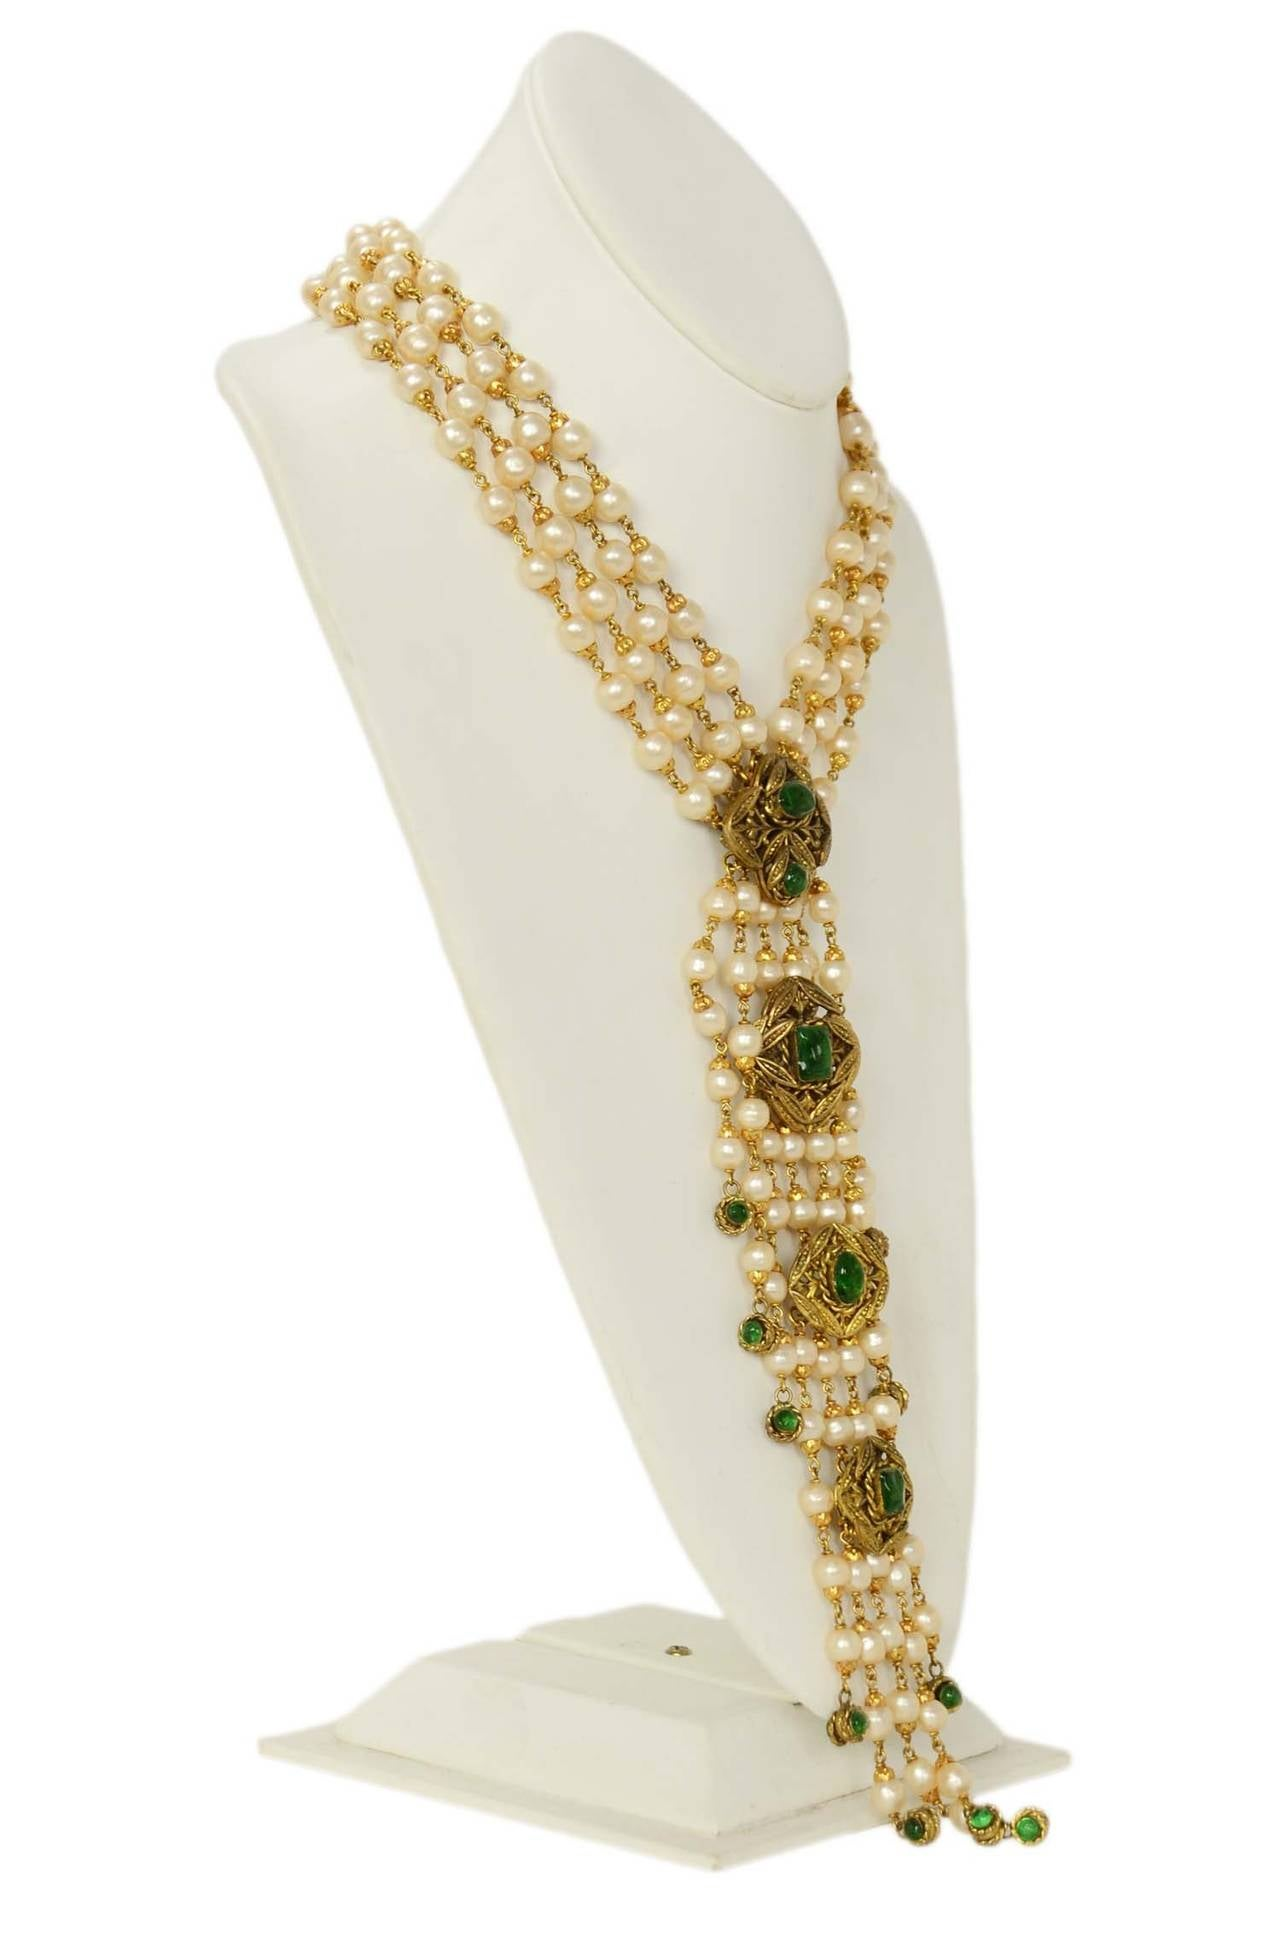 CHANEL '70s RARE 4 Strand Faux Pearl Necklace w/ Dripping Pearls & Green Gripoix 2